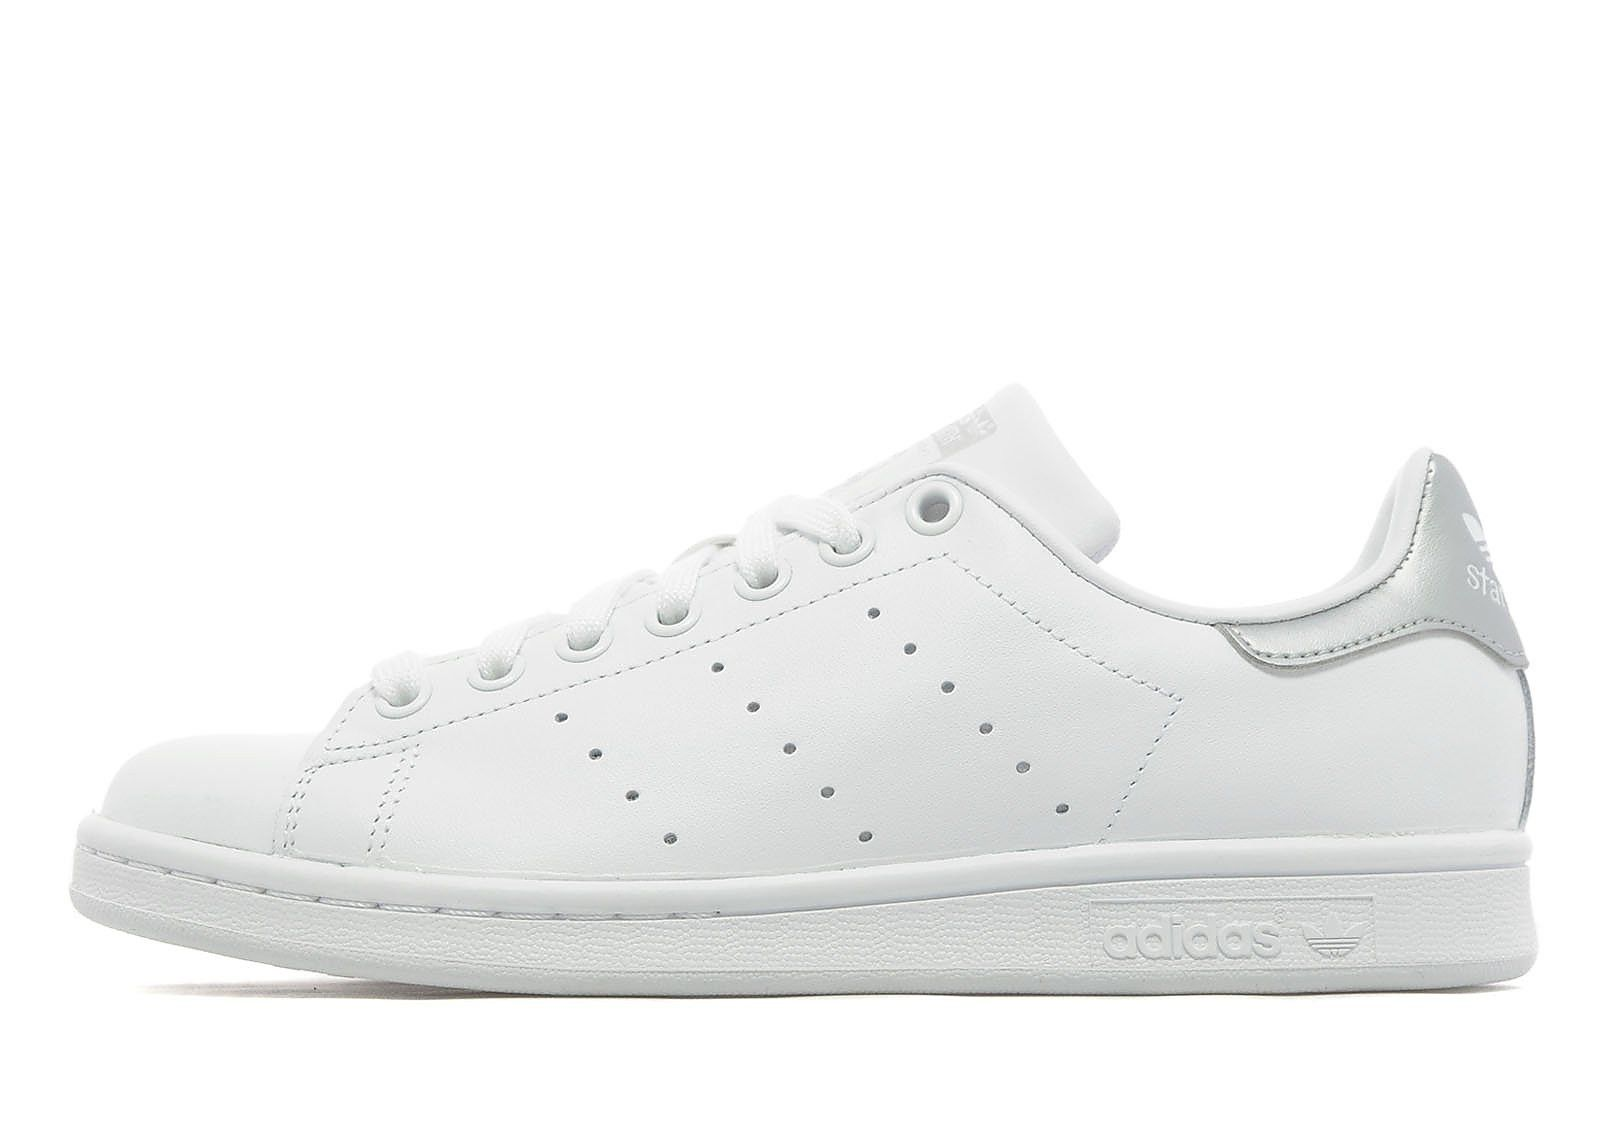 adidas Originals Stan Smith Women\u0027s - White/Silver - Womens